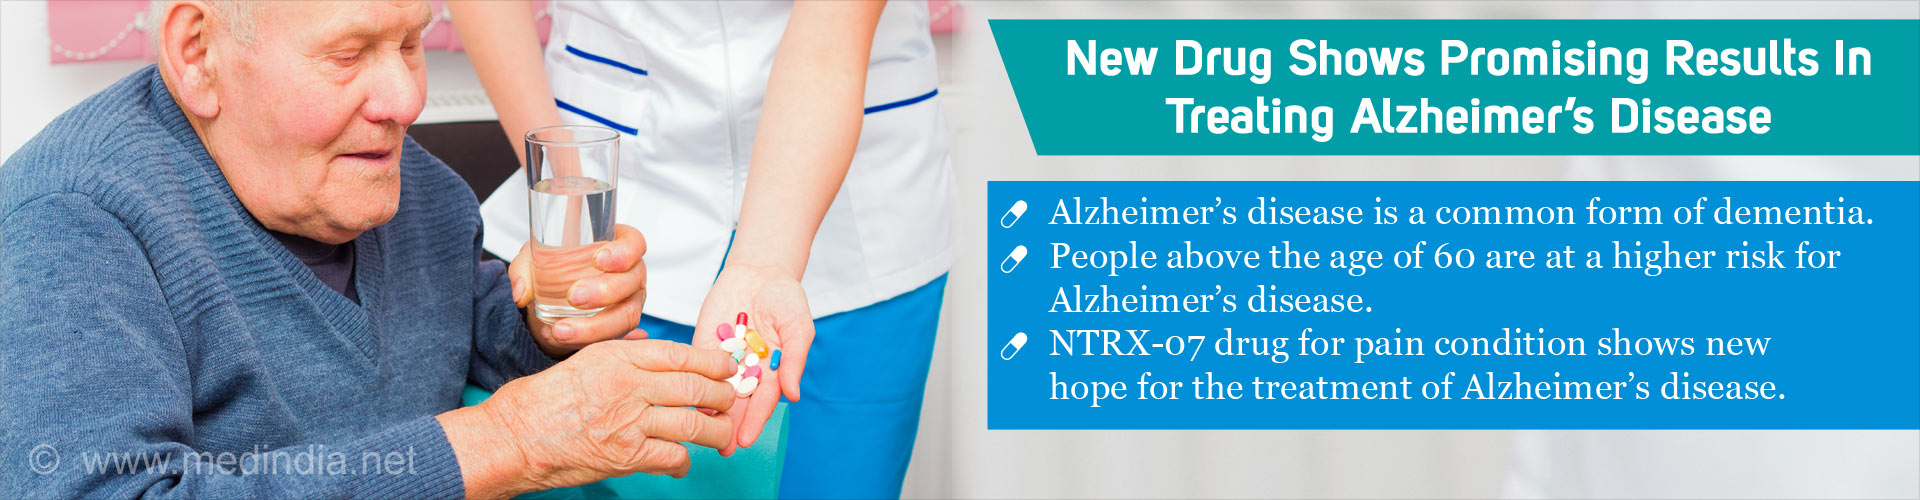 'NTRX -07' Drug for Pain Condition Shows New Hope in Treating Alzheimer's Disease